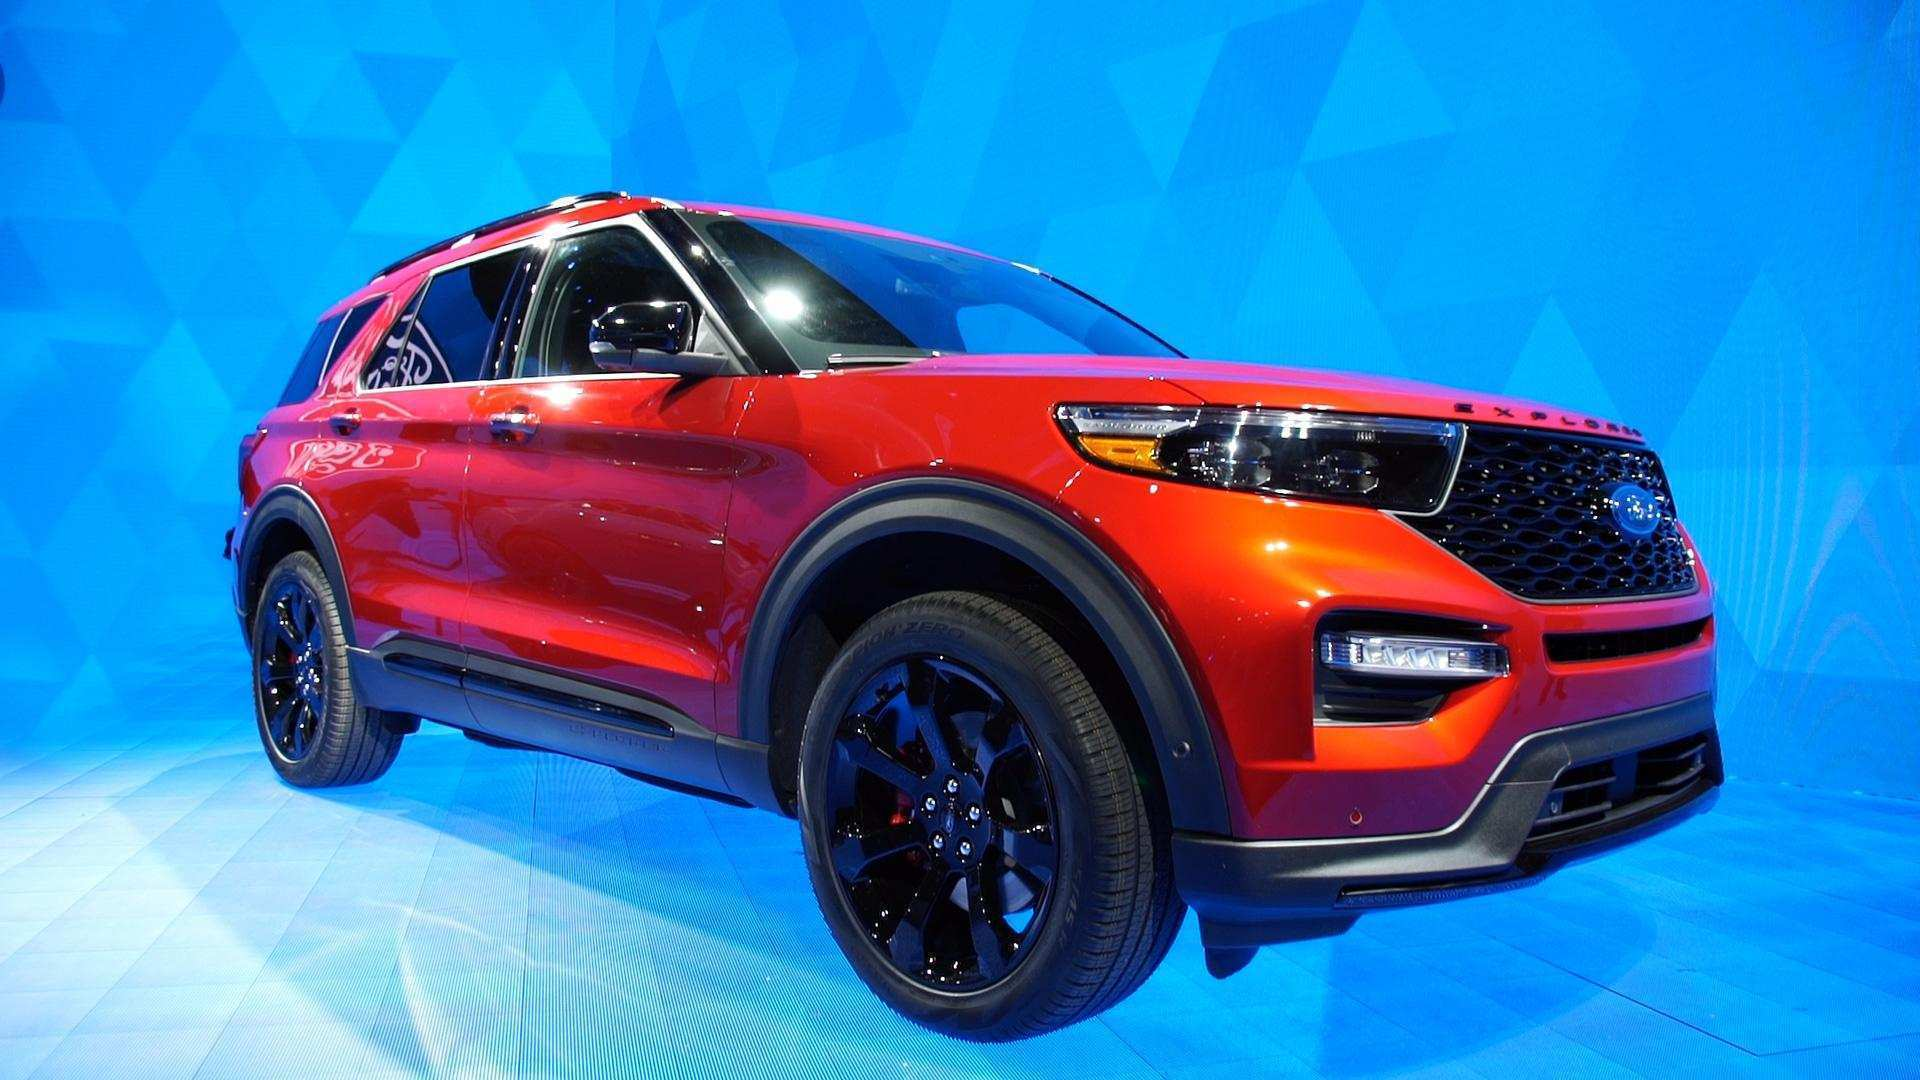 42 Best Review 2020 Ford Explorer Design Research New for 2020 Ford Explorer Design